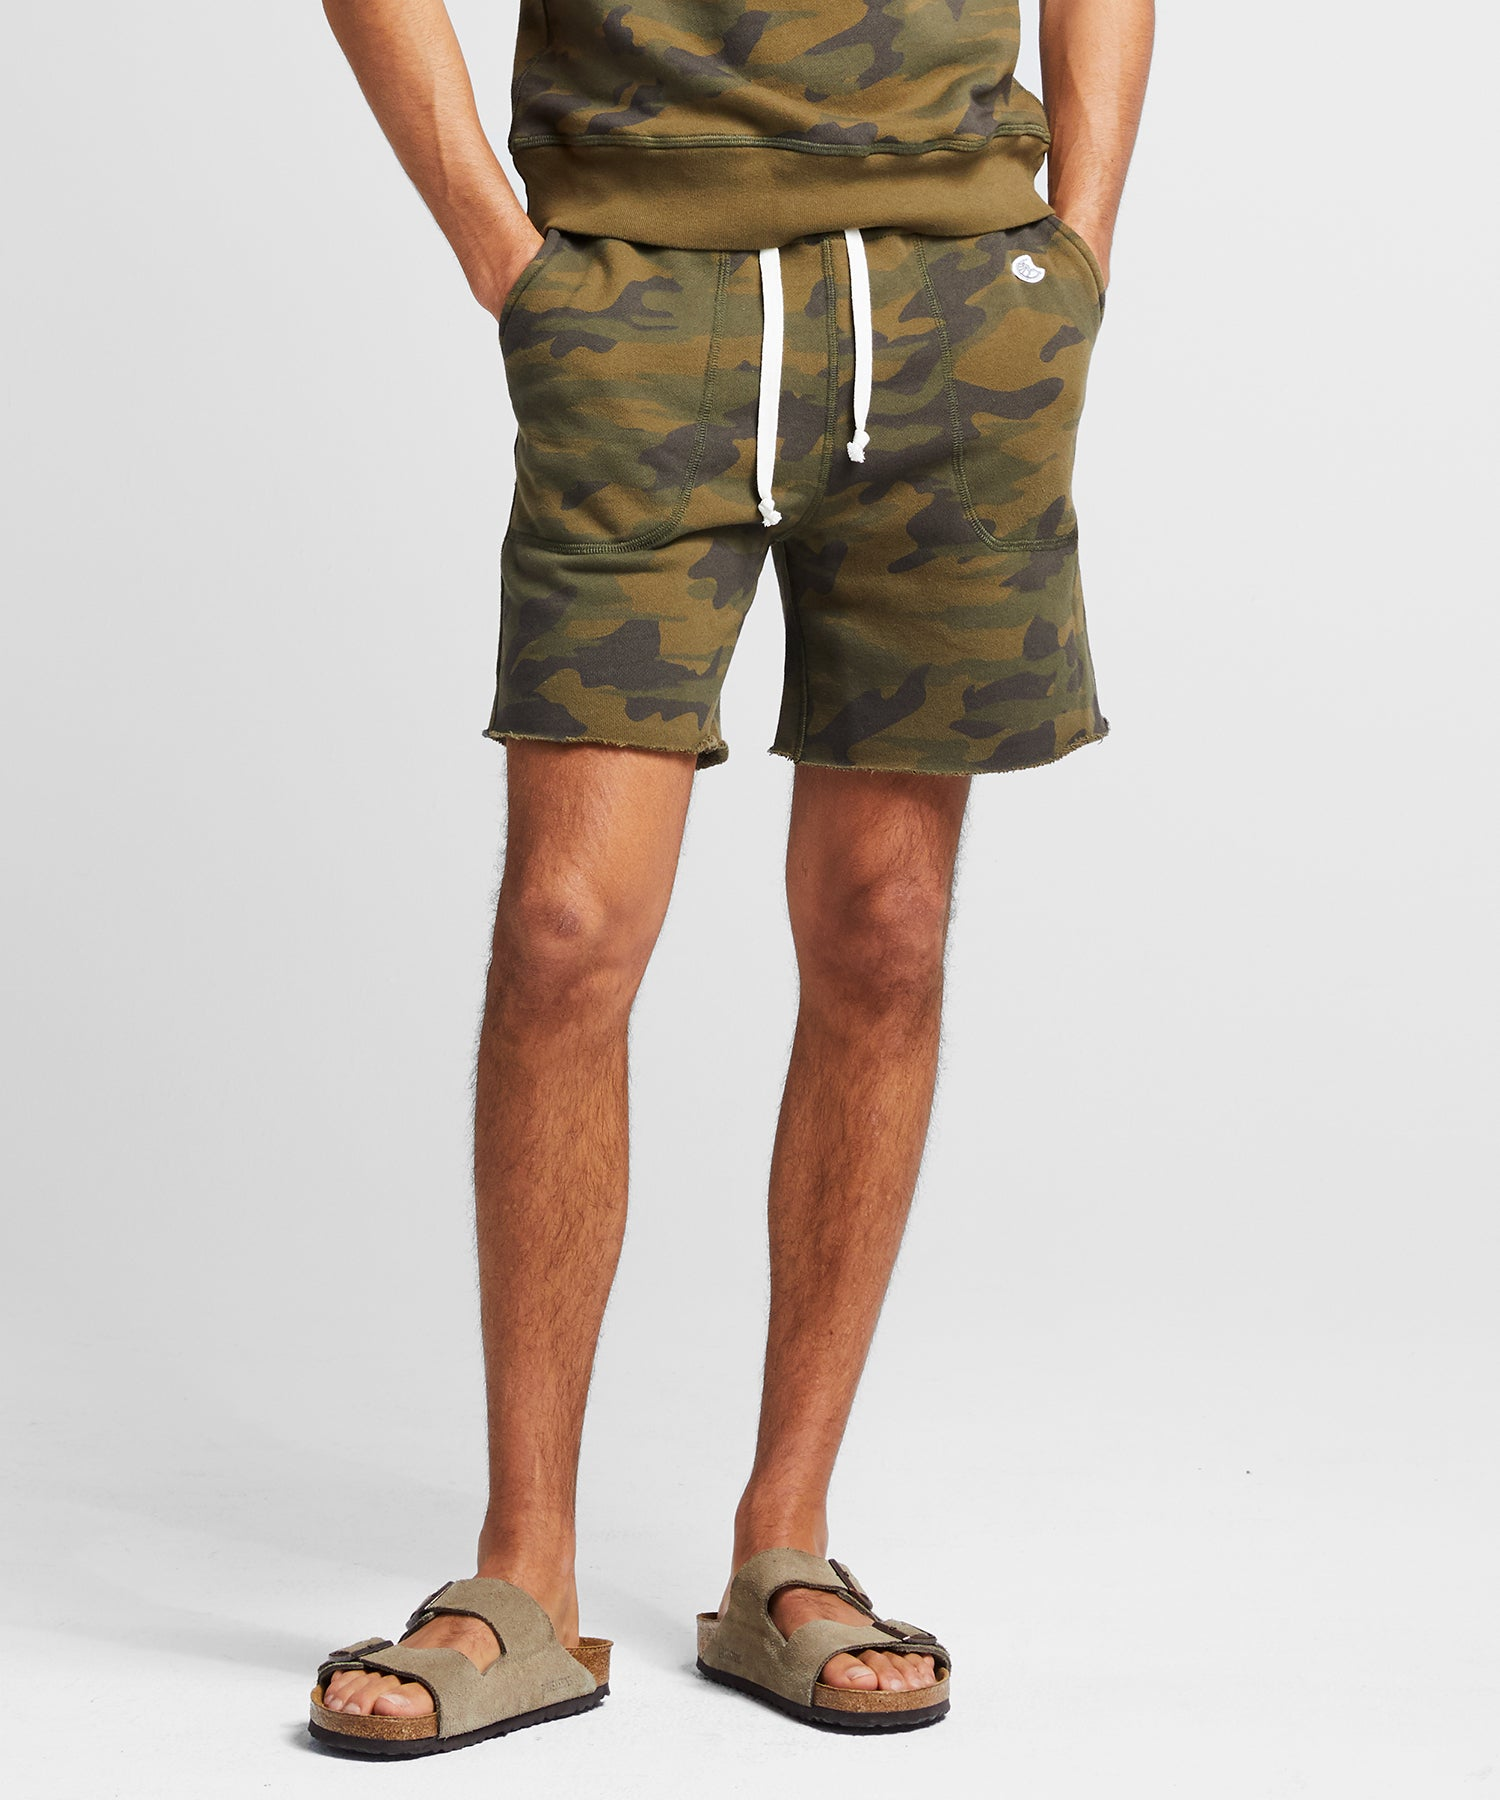 Fatigue Camo Cut Off Sweatshort